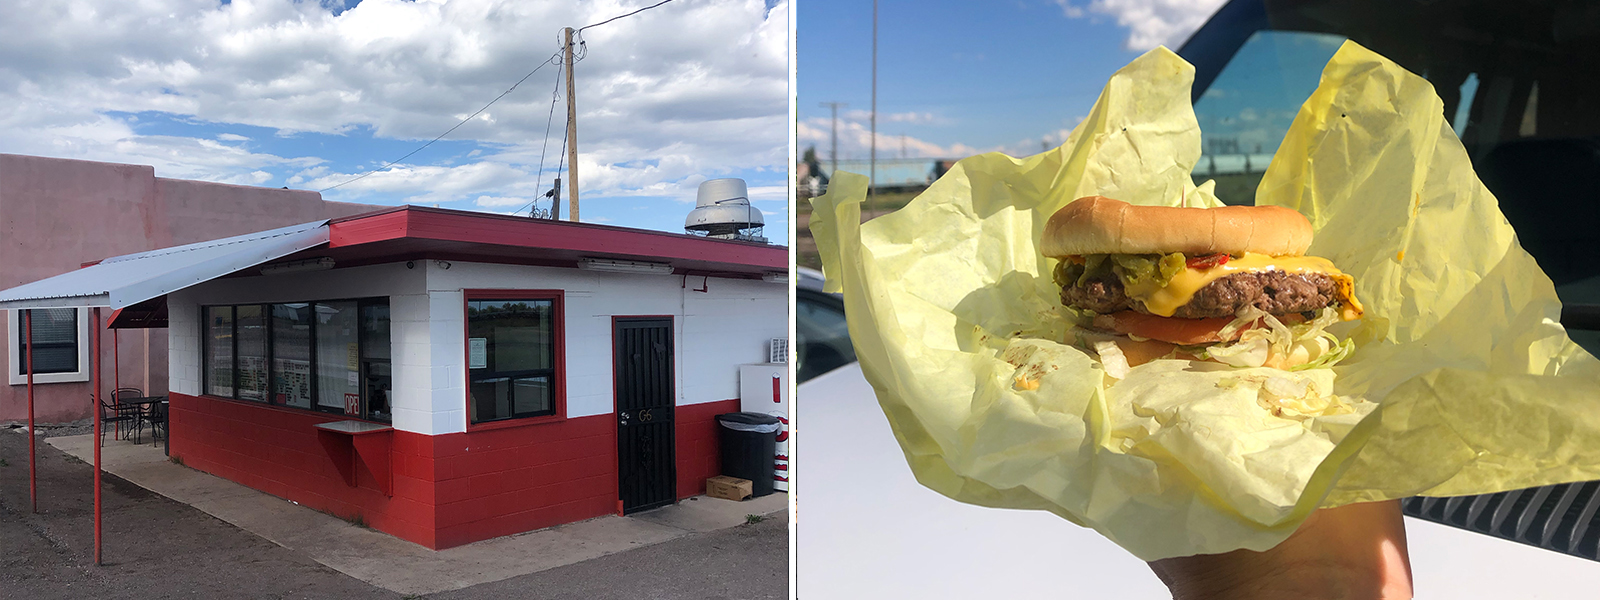 Red and white building called G6 Burger. Holding a cheeseburger.